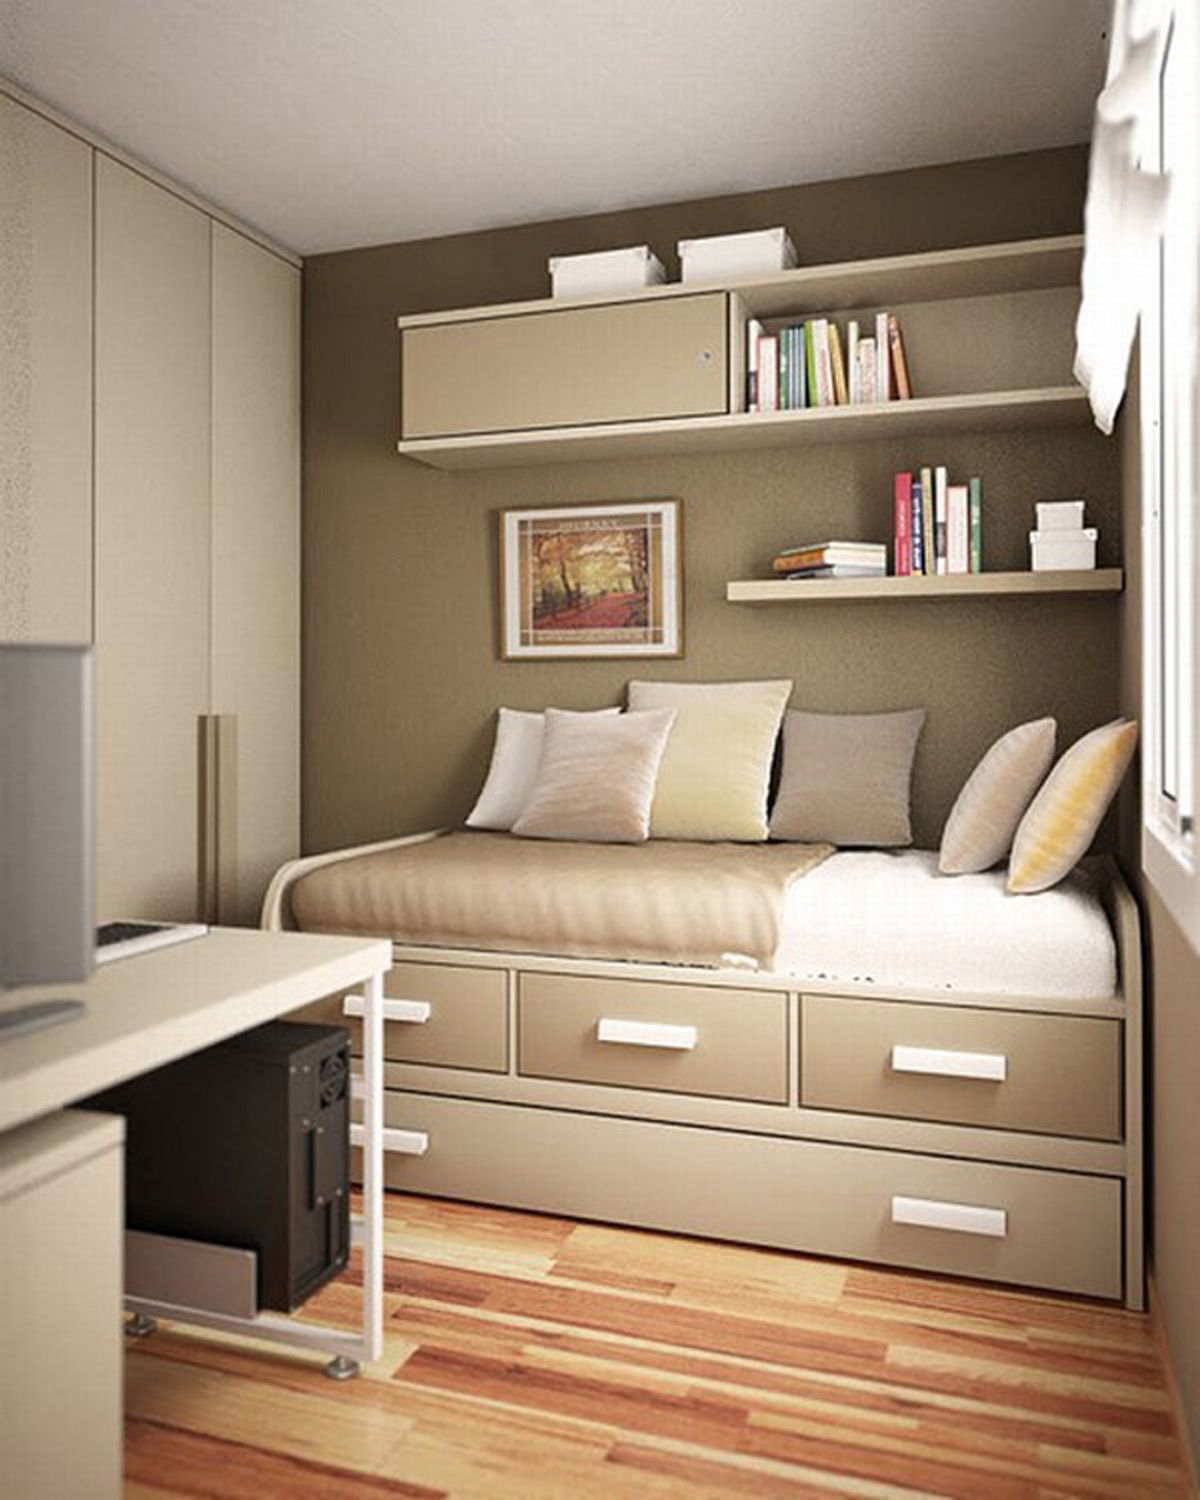 Images For Small Bedroom Designs contemporary small bedroom ideas | bedrooms, storage design and